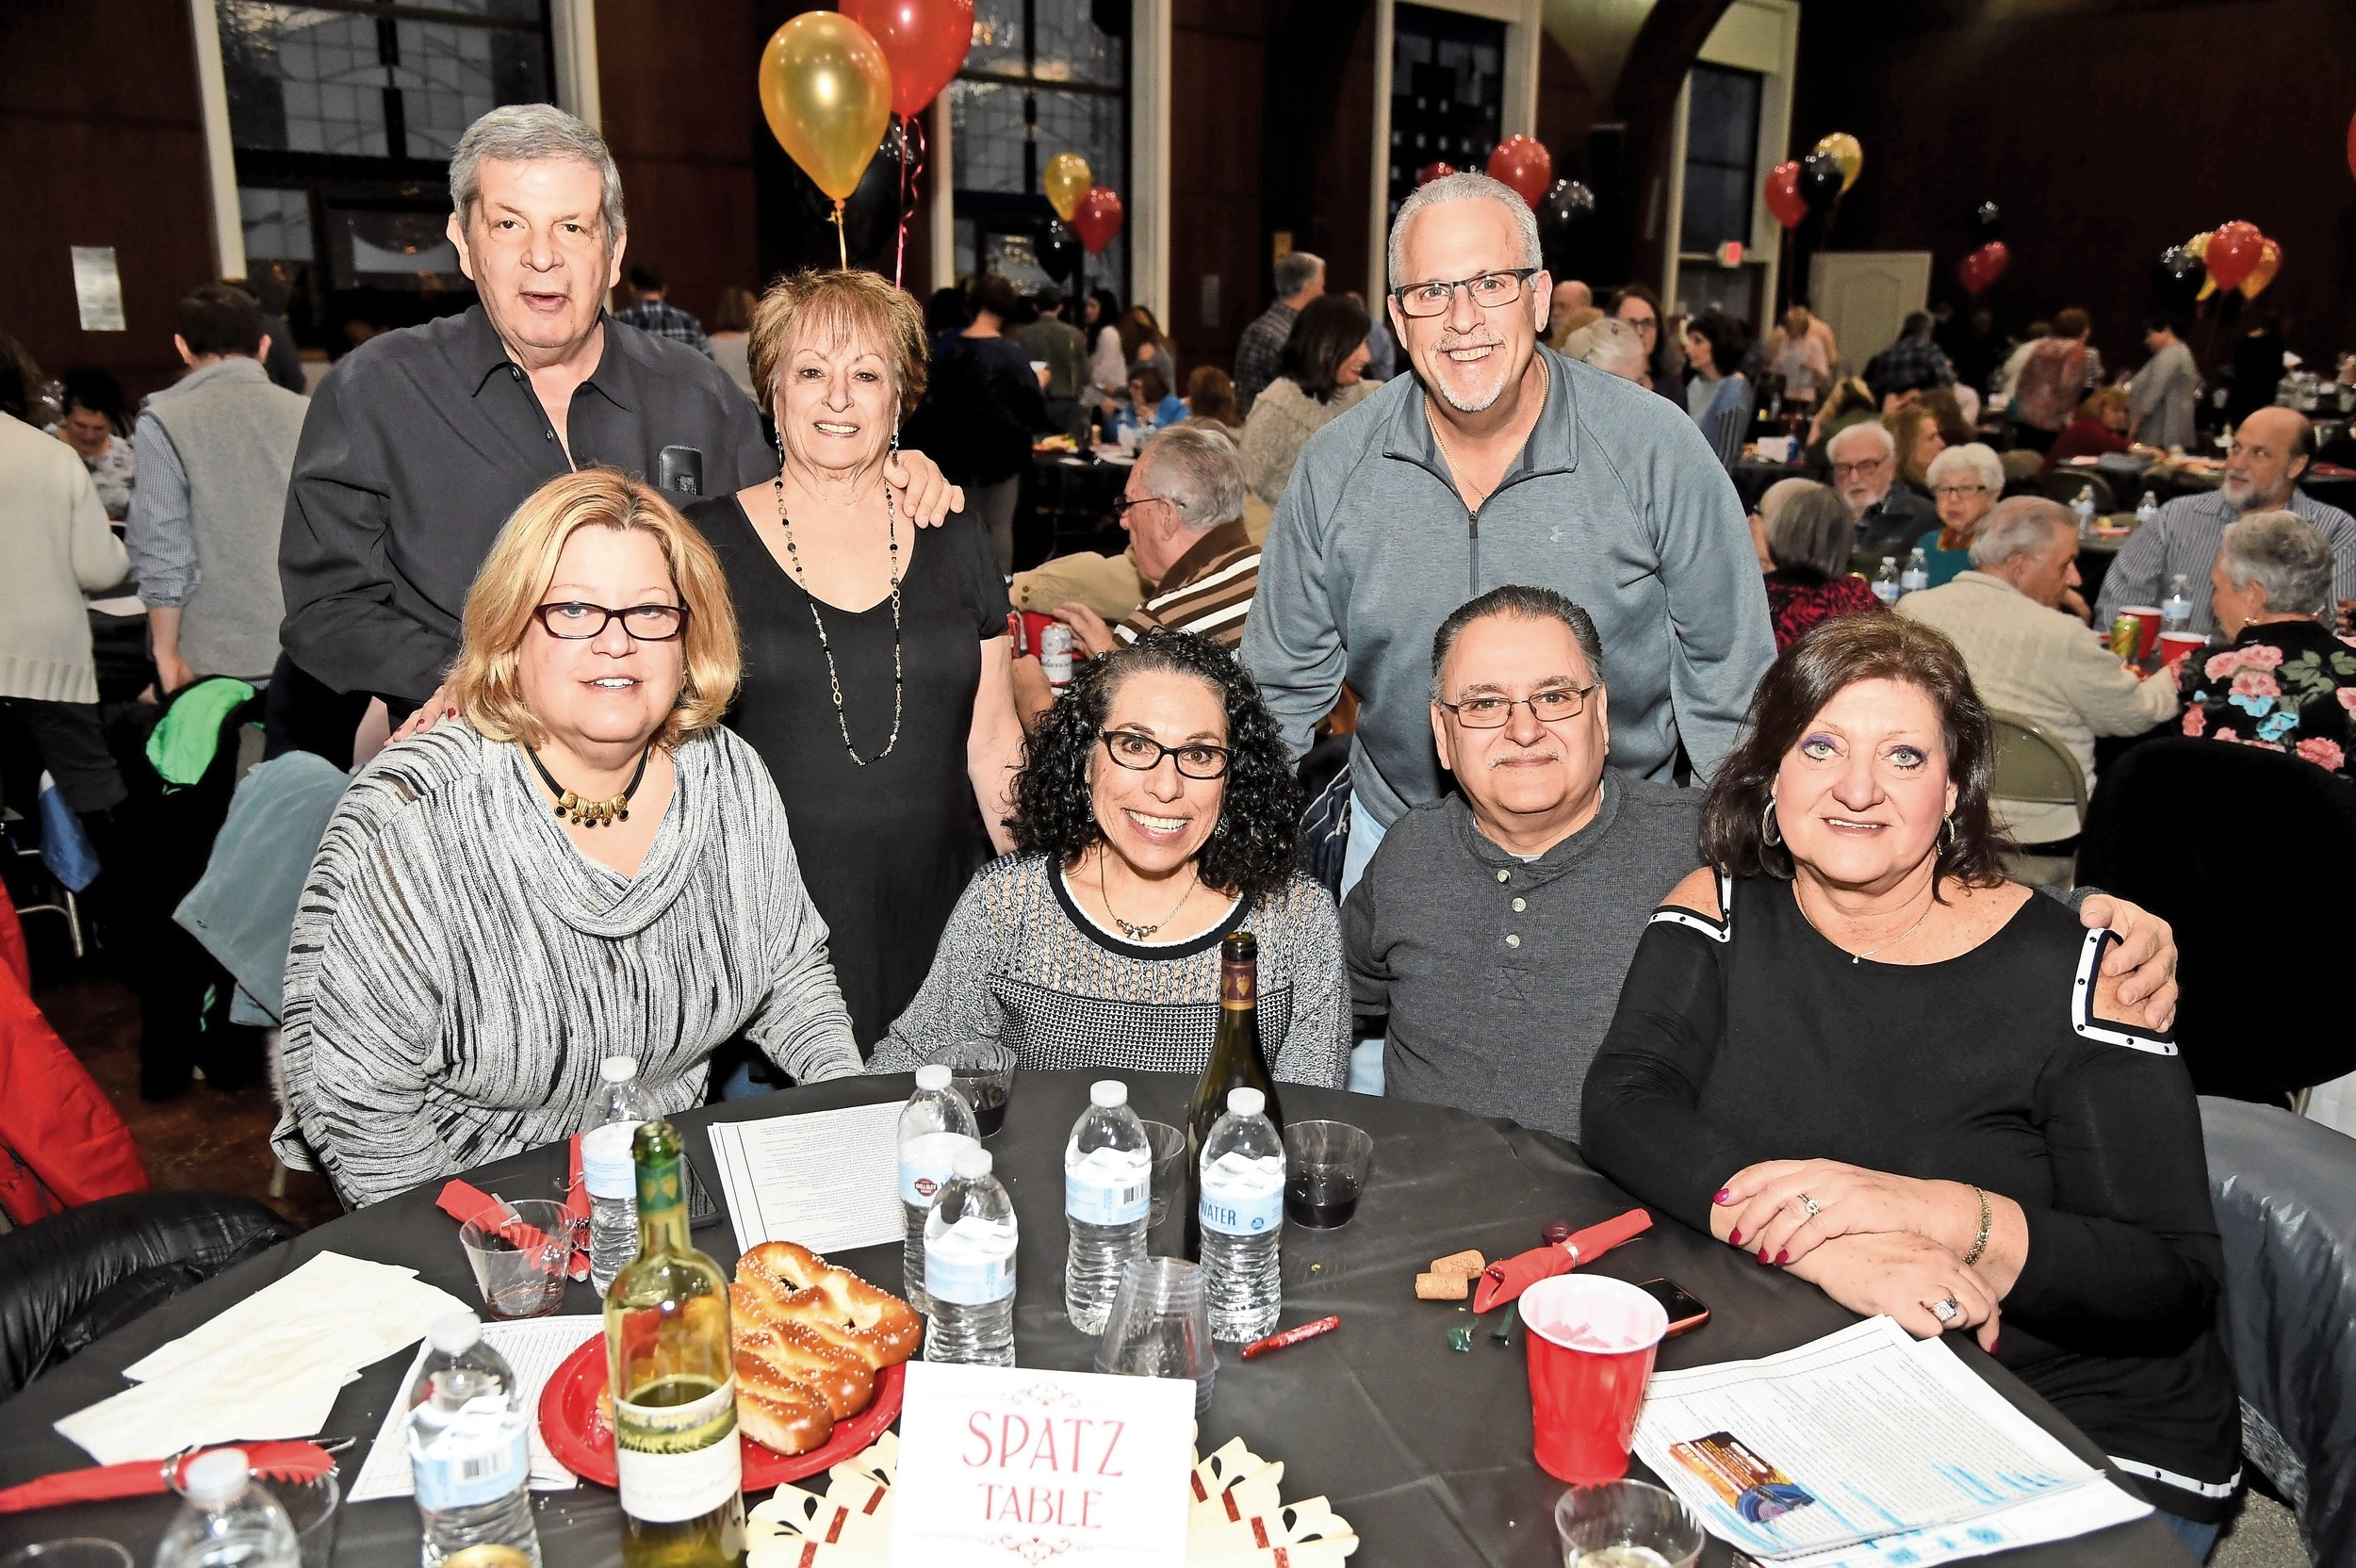 Mike and Marilyn Worcinoff, Jay Jacobson, Andrea Rifkin, Sherrill Spatz, Mike Paccione, Stephanie Jacobson had a blast at the Temple B'Nai Torah gala on March 18.